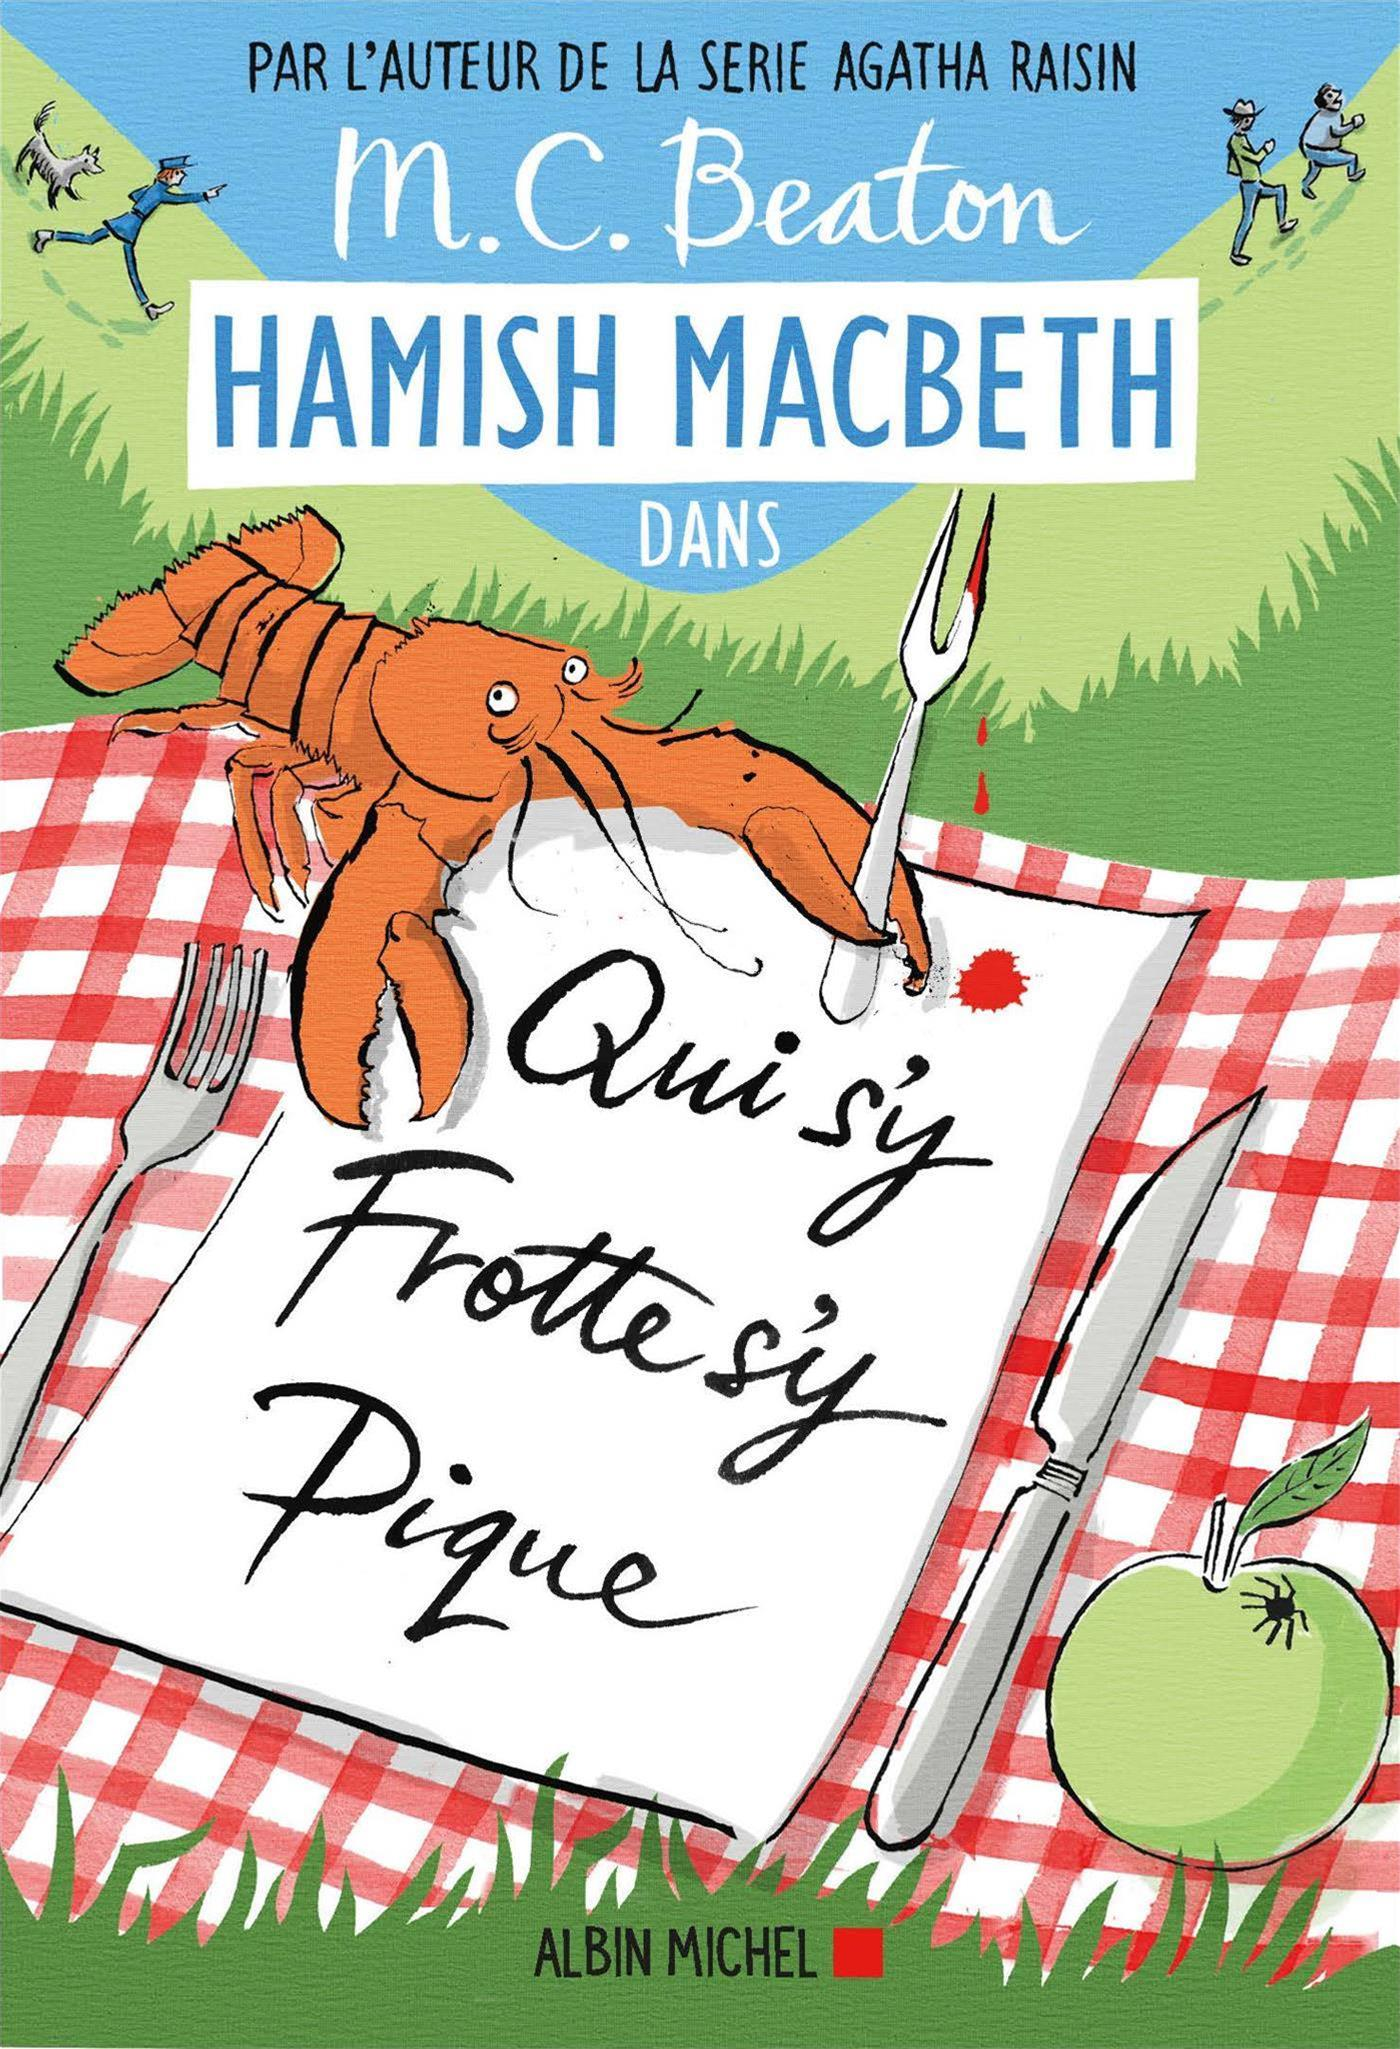 Hamish MacBeth - Nº 3